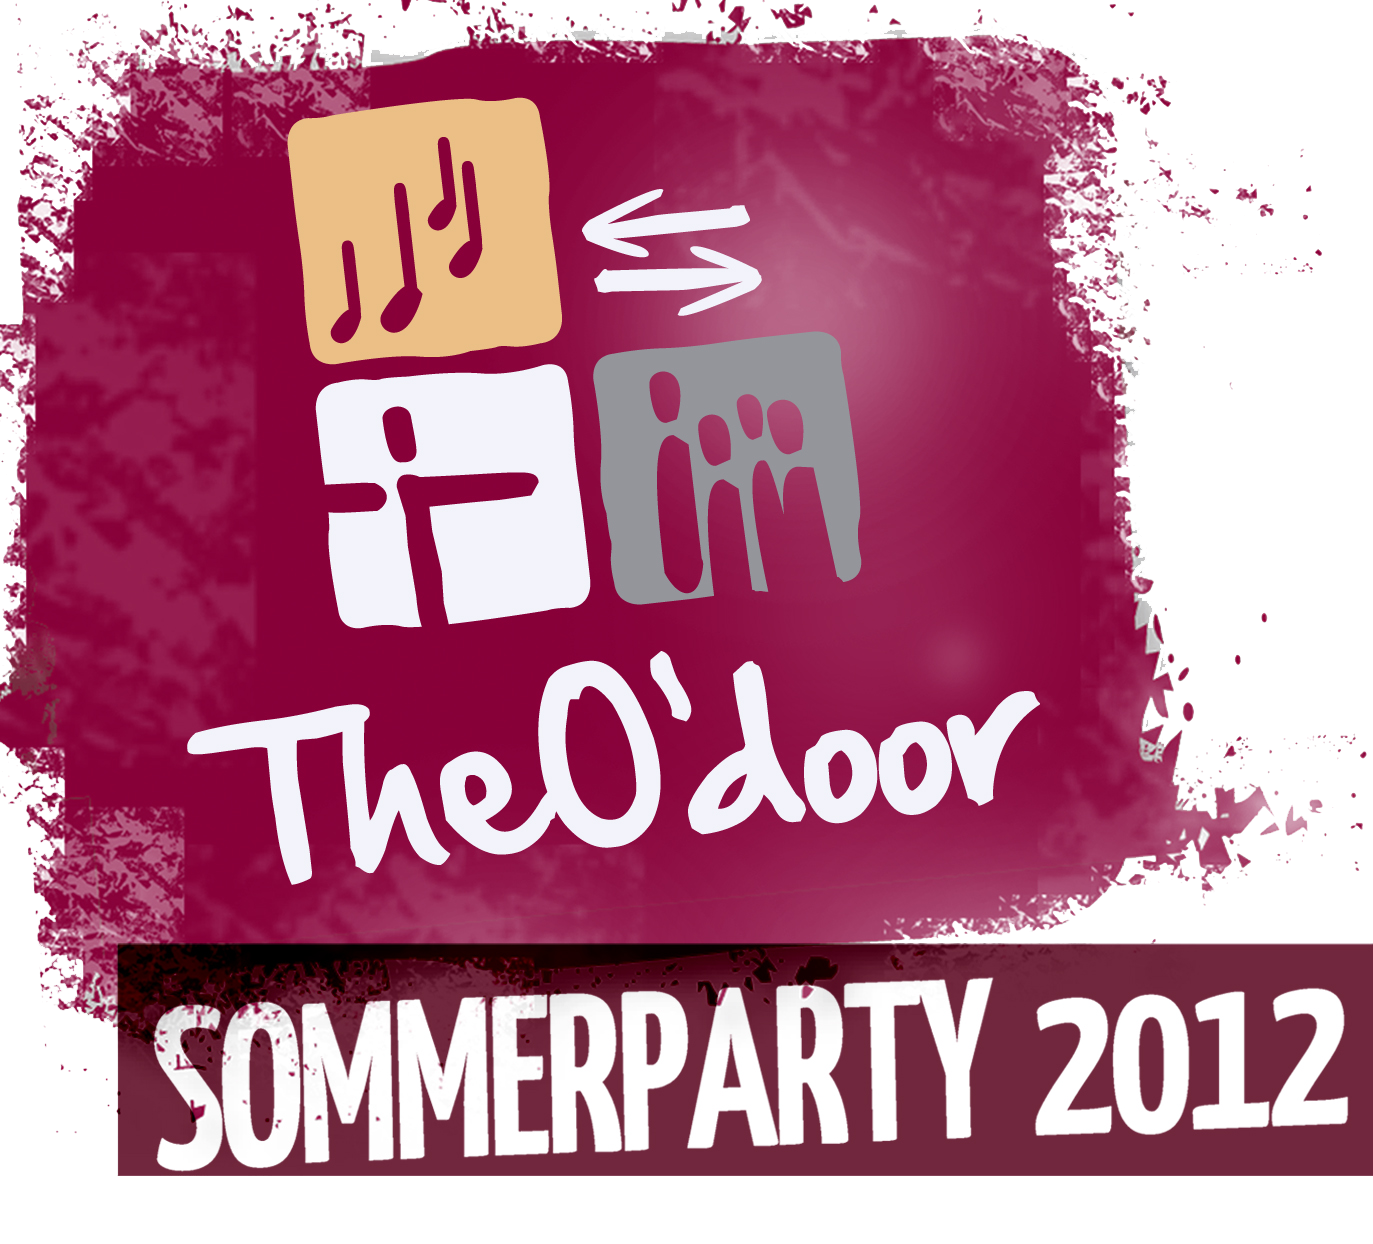 Sommerparty '12 - 23.06.2012